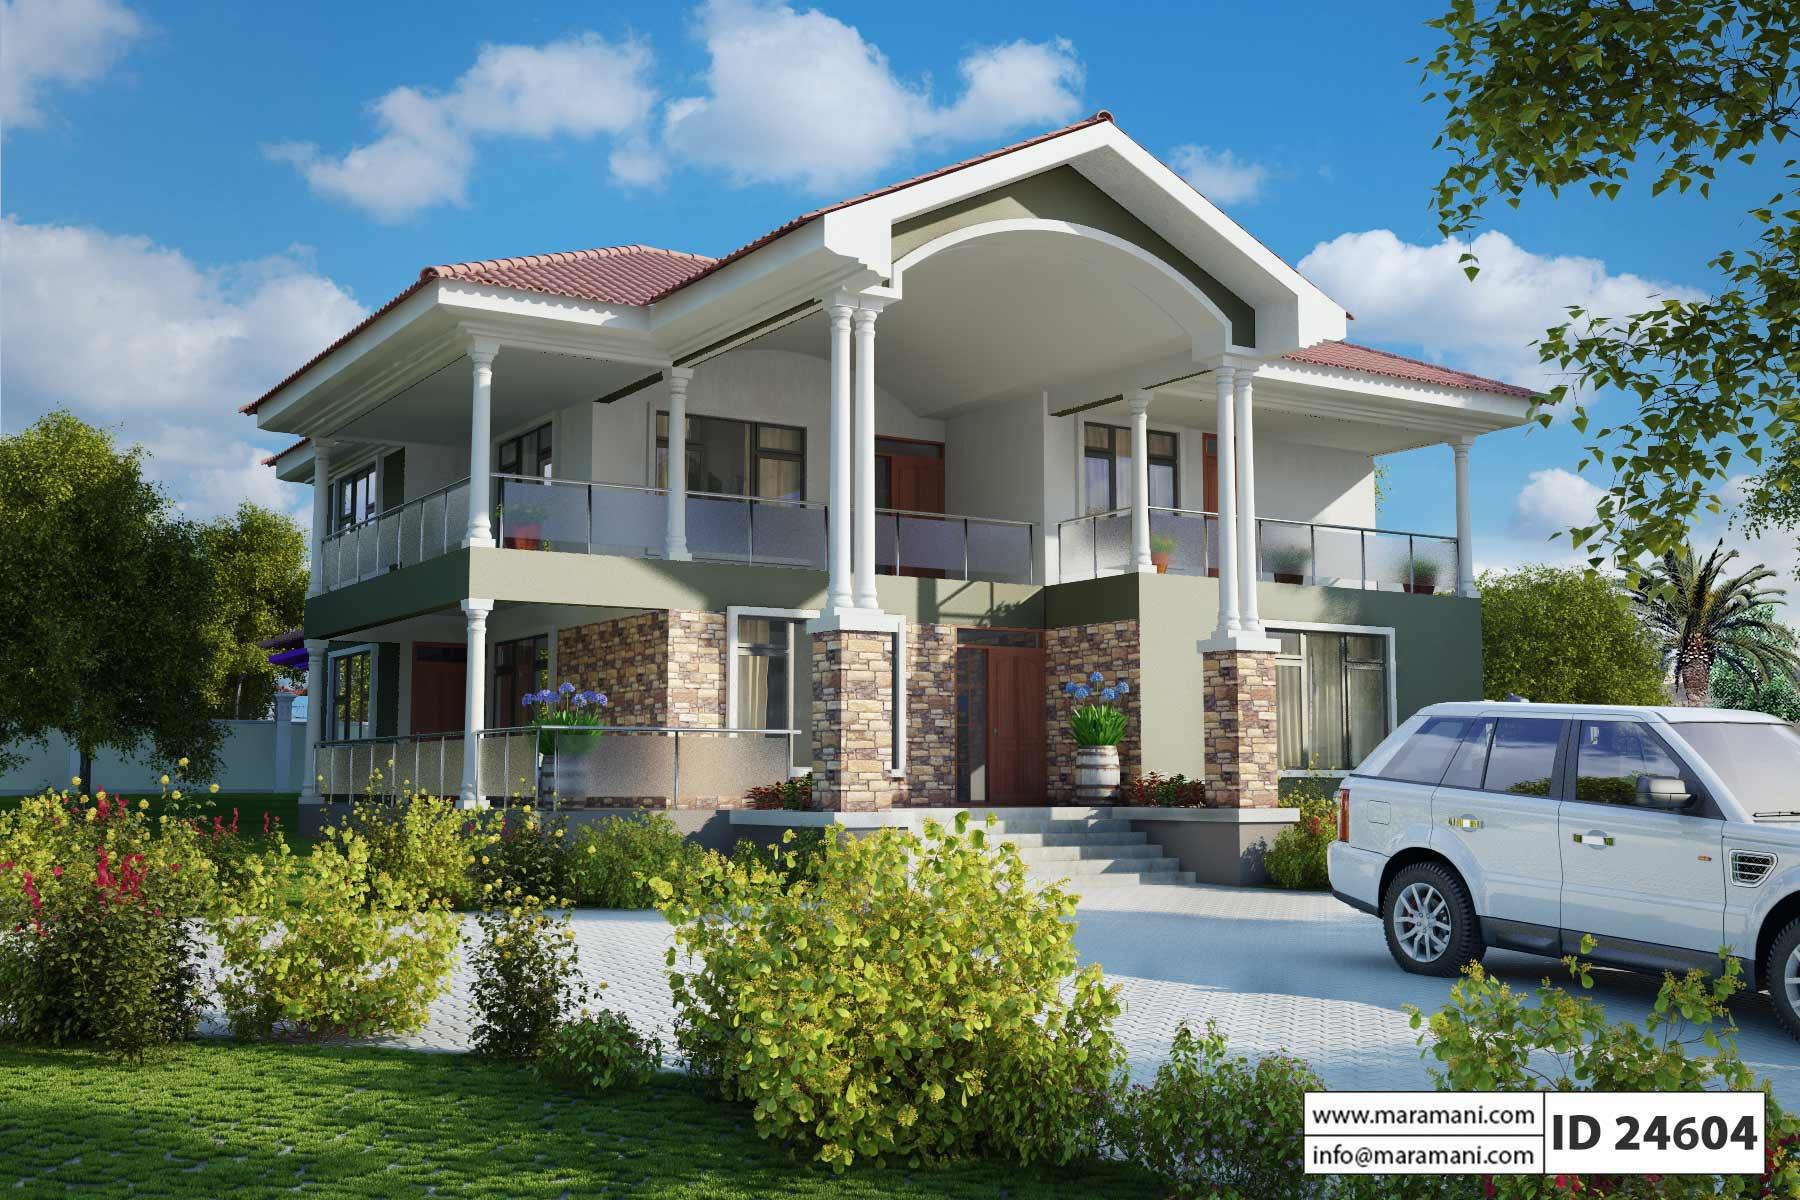 Maramani 4Bedrooms House Plan